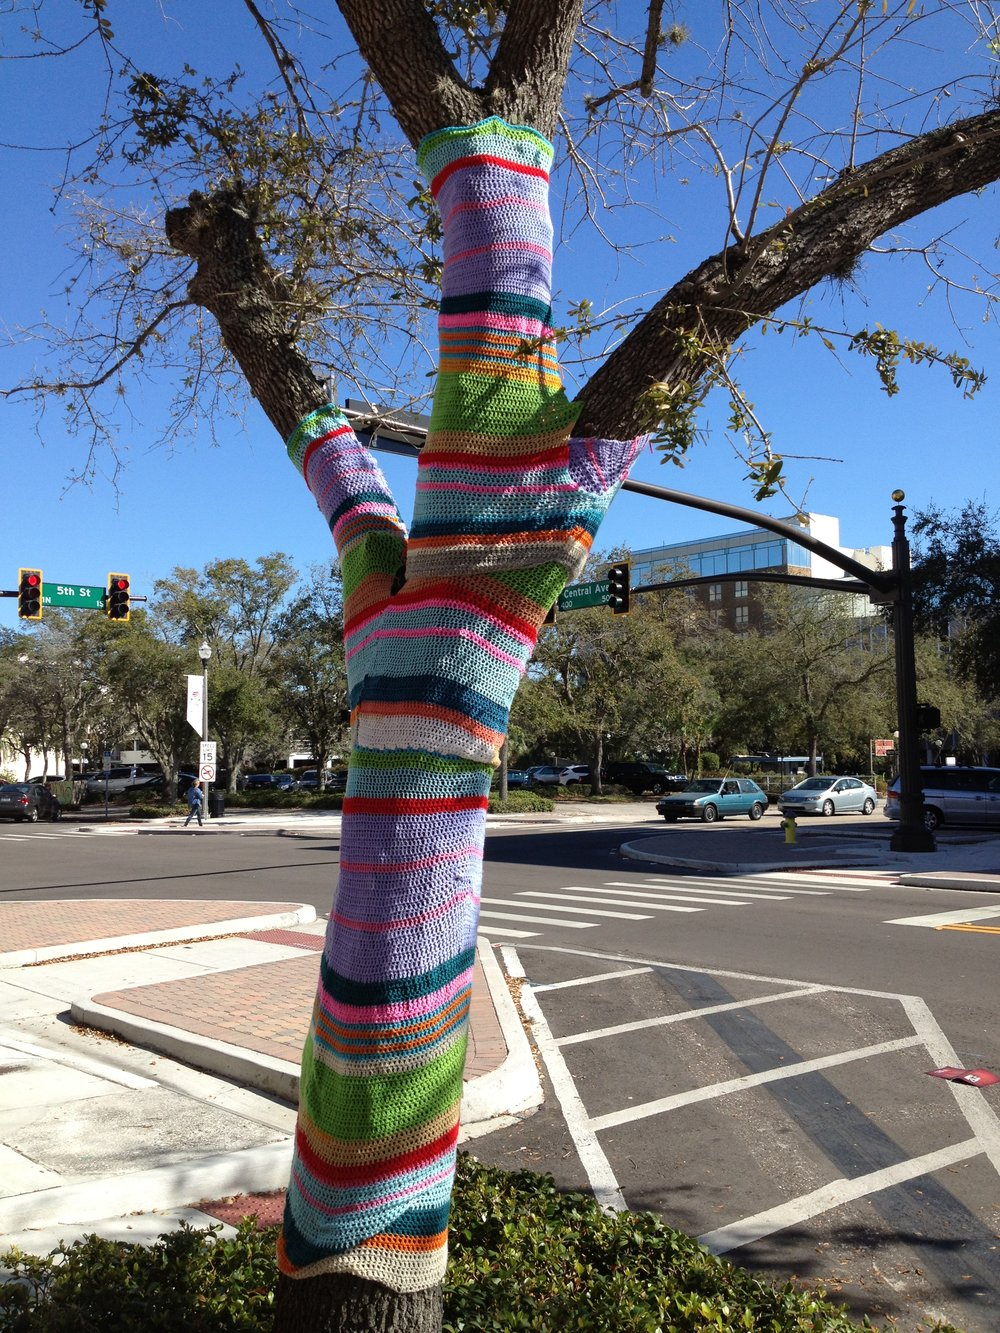 Street tree saying warm in St. Petersburg, FL (Photo by Sarah Kobos)